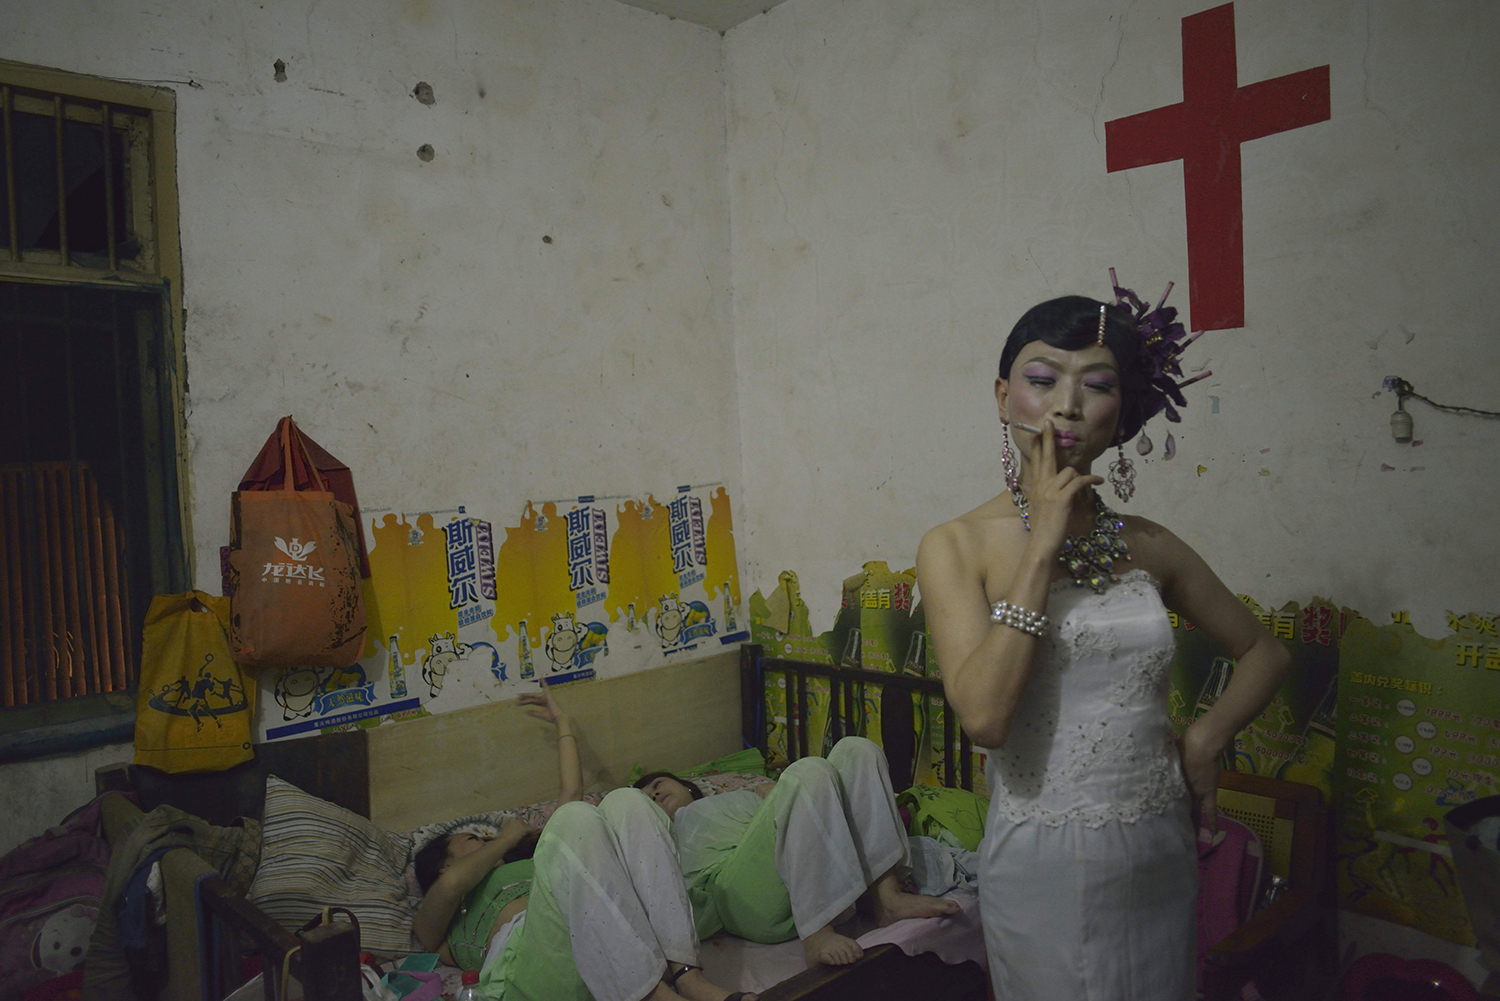 A performer smokes during a break at a funeral, Wanzhou district of Chongqing municipality, June 23, 2014.